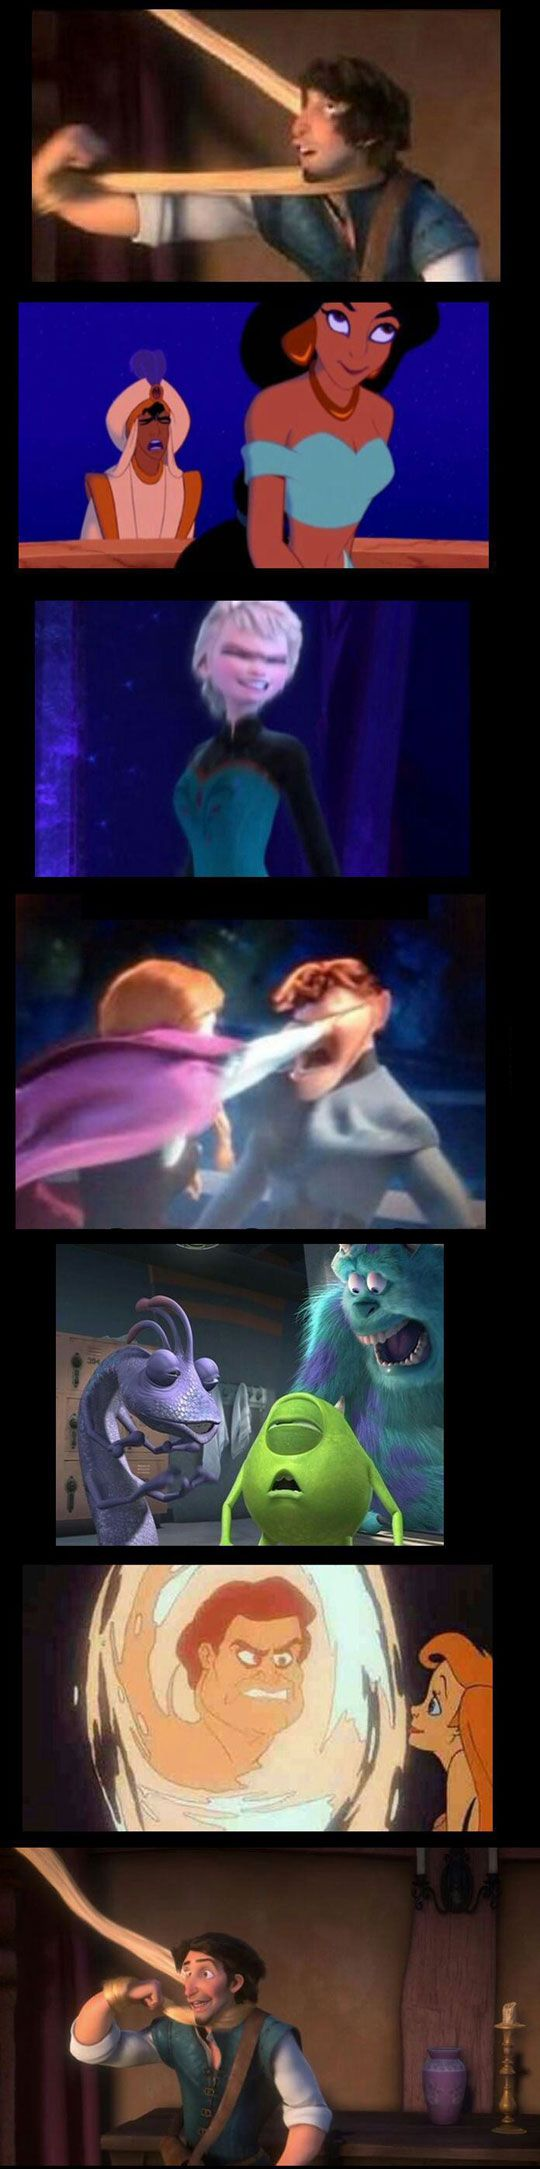 A wide assortment of paused Disney films, instantly ruining your childhood; Disney